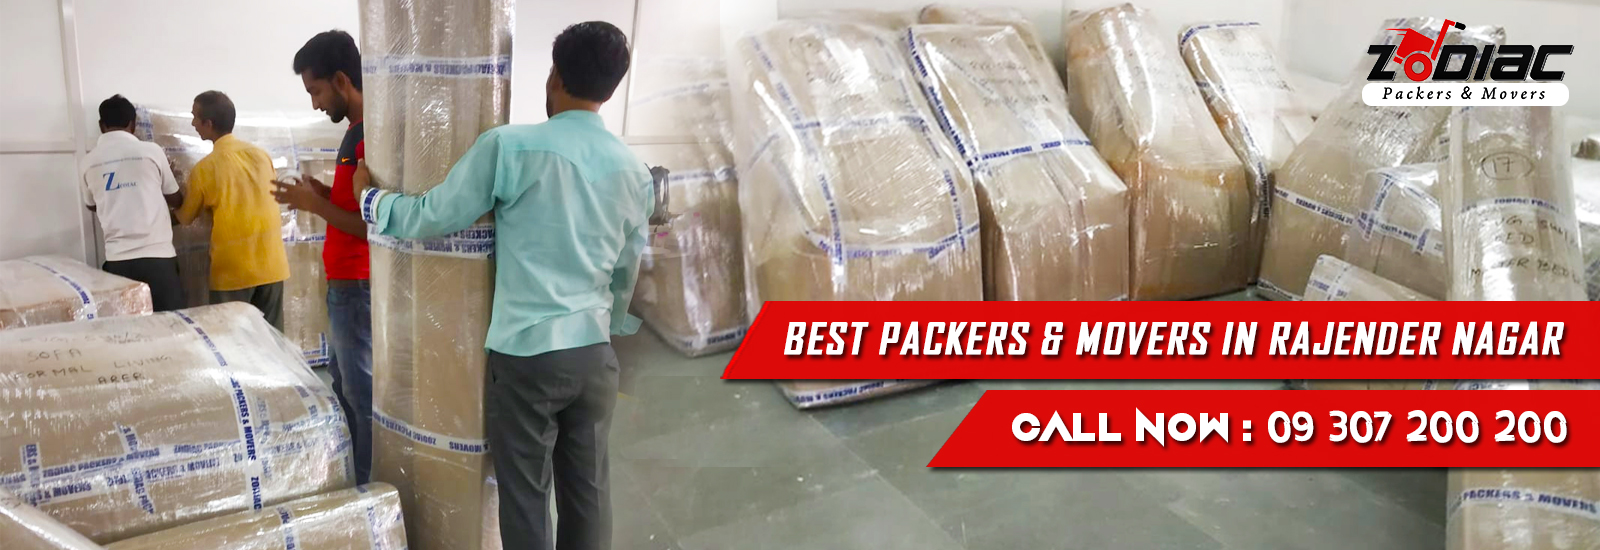 Packers and Movers in Rajender Nagar